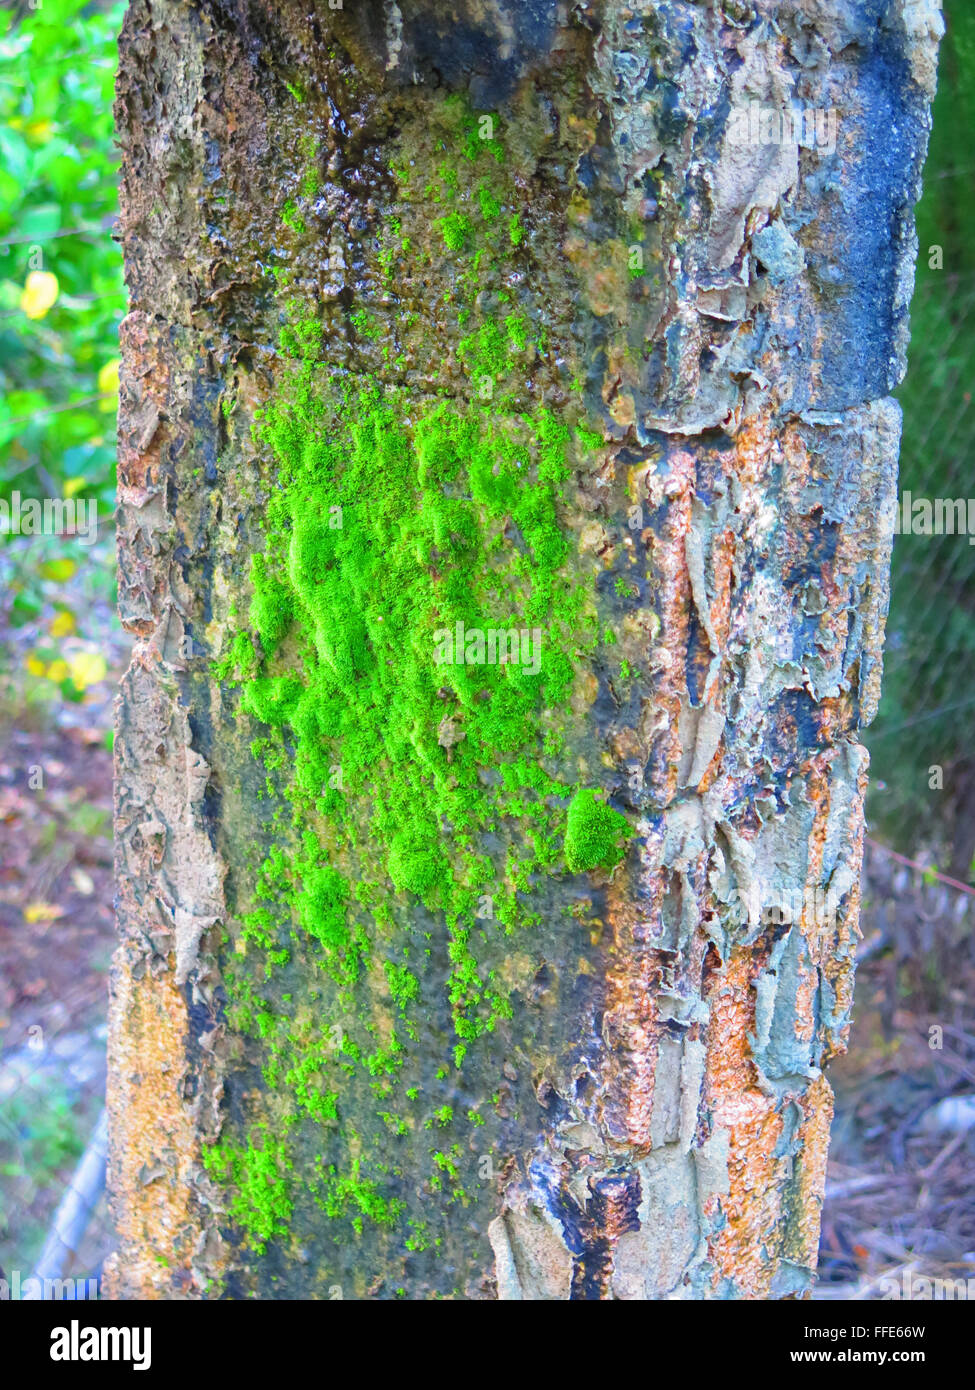 Moss growing on concrete pillar supporting irrigation canal - Stock Image